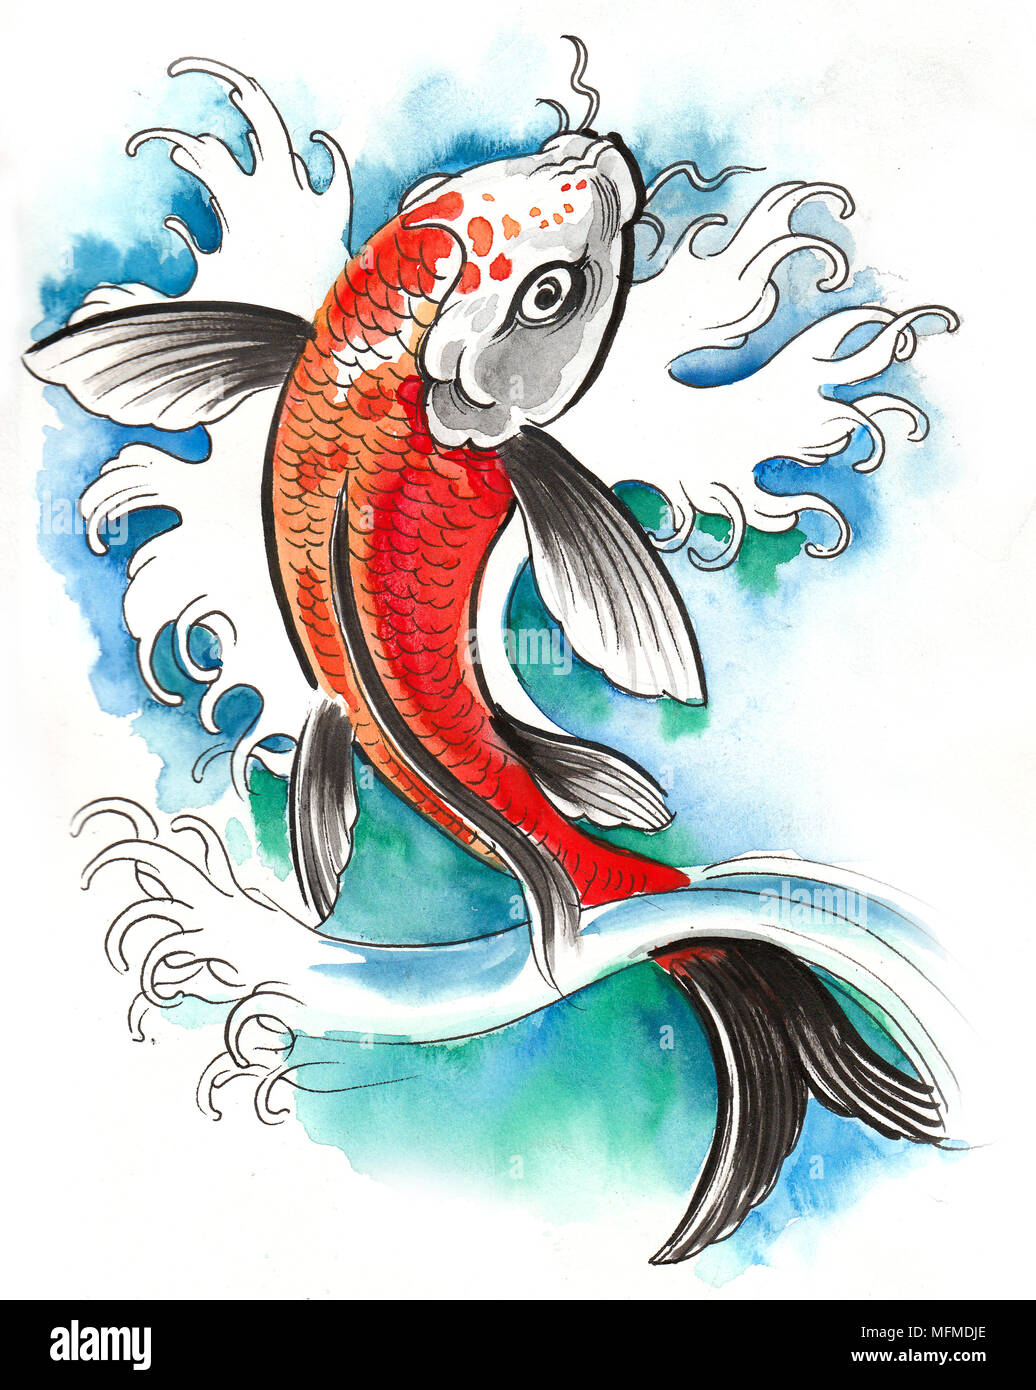 Ink And Watercolor Drawing Of A Koi Fish Stock Photo 181773270 Alamy